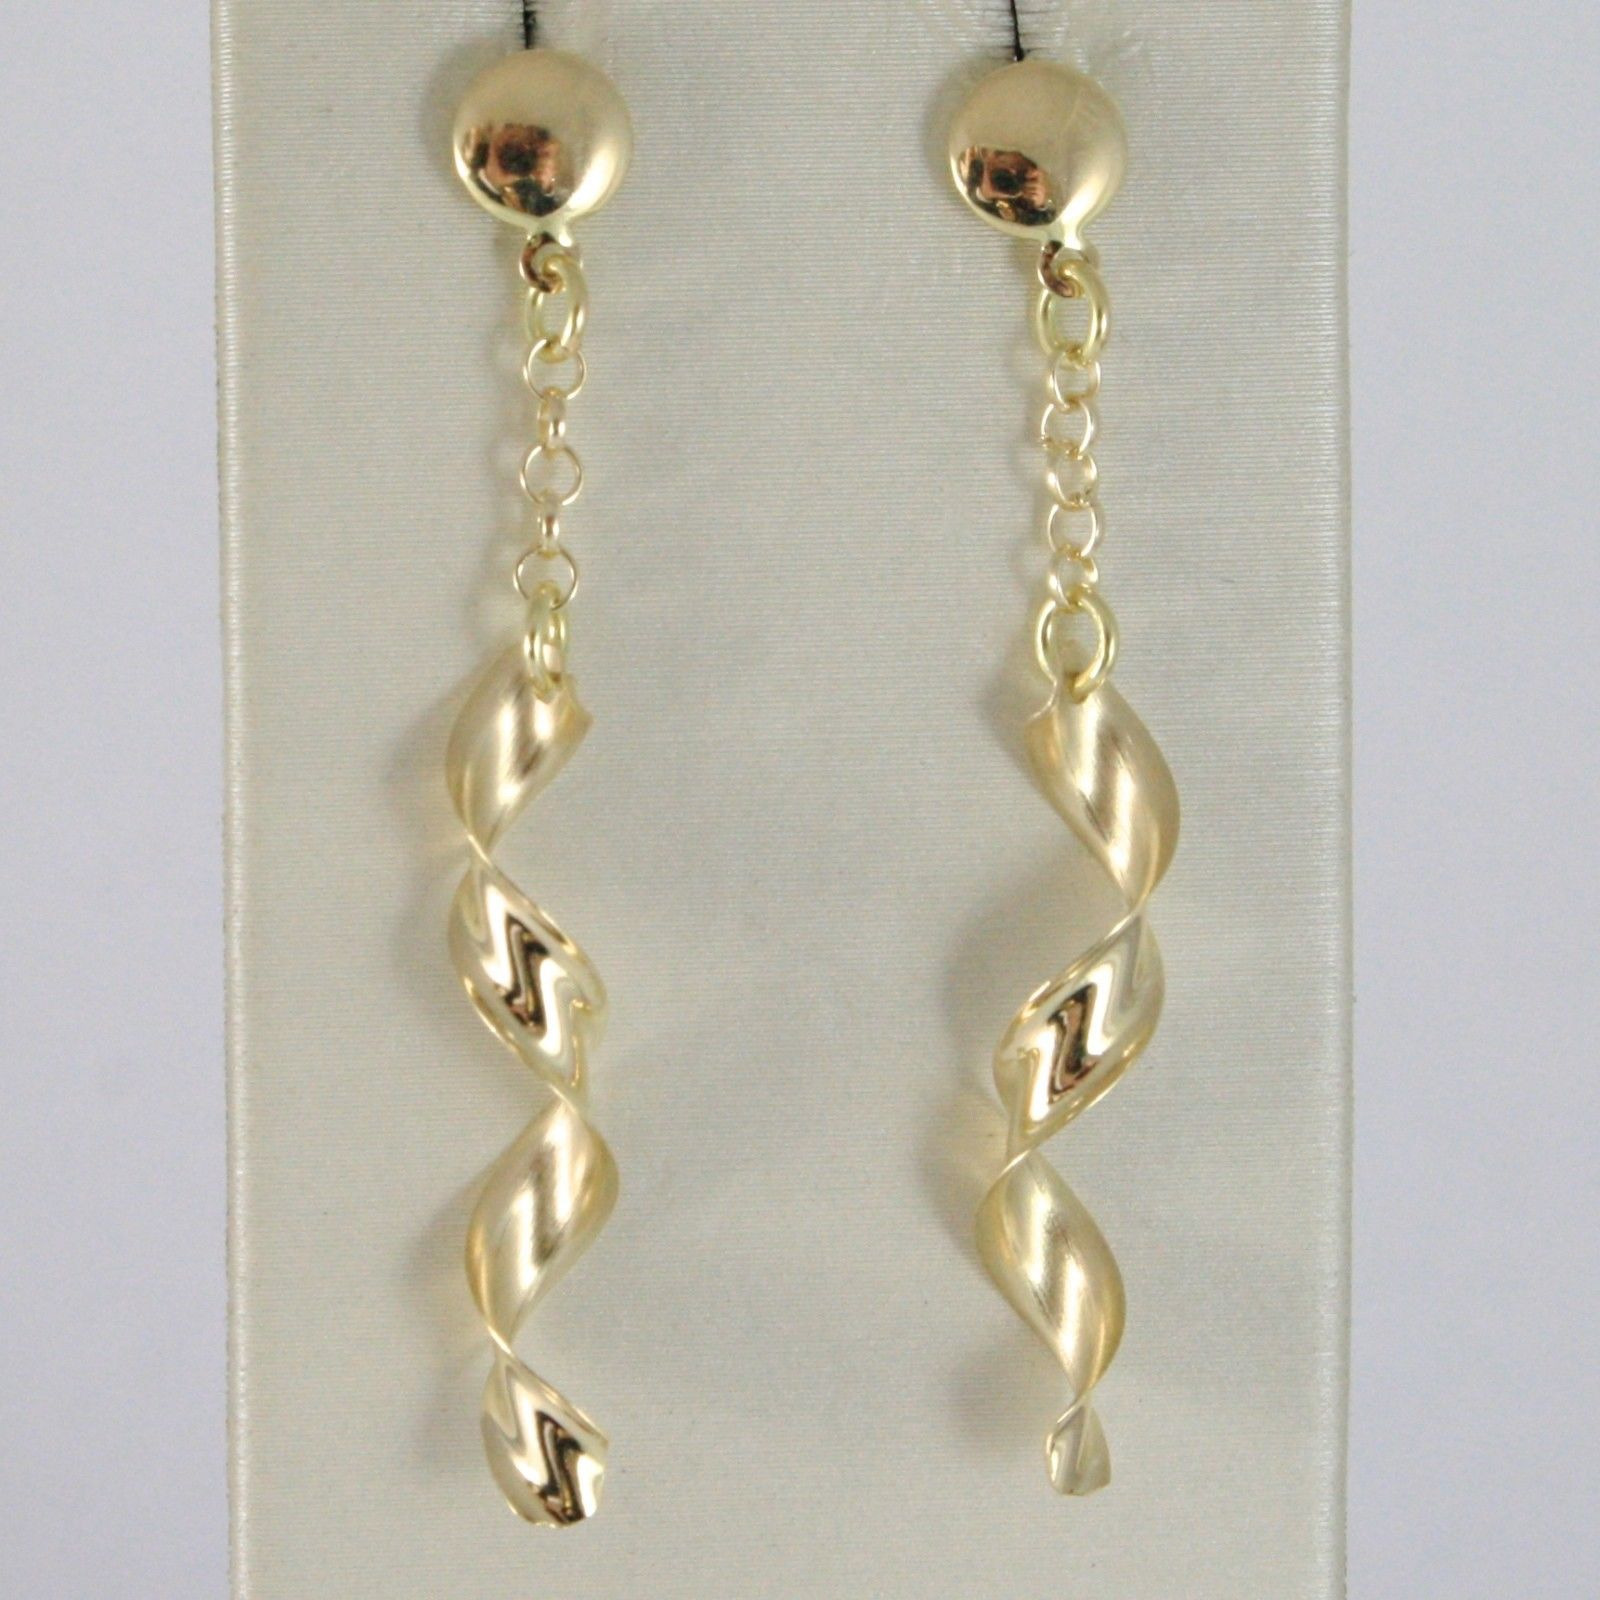 SOLID 18K YELLOW GOLD LONG PENDANT EARRINGS WITH WORKED SPIRAL & ROLO CHAIN